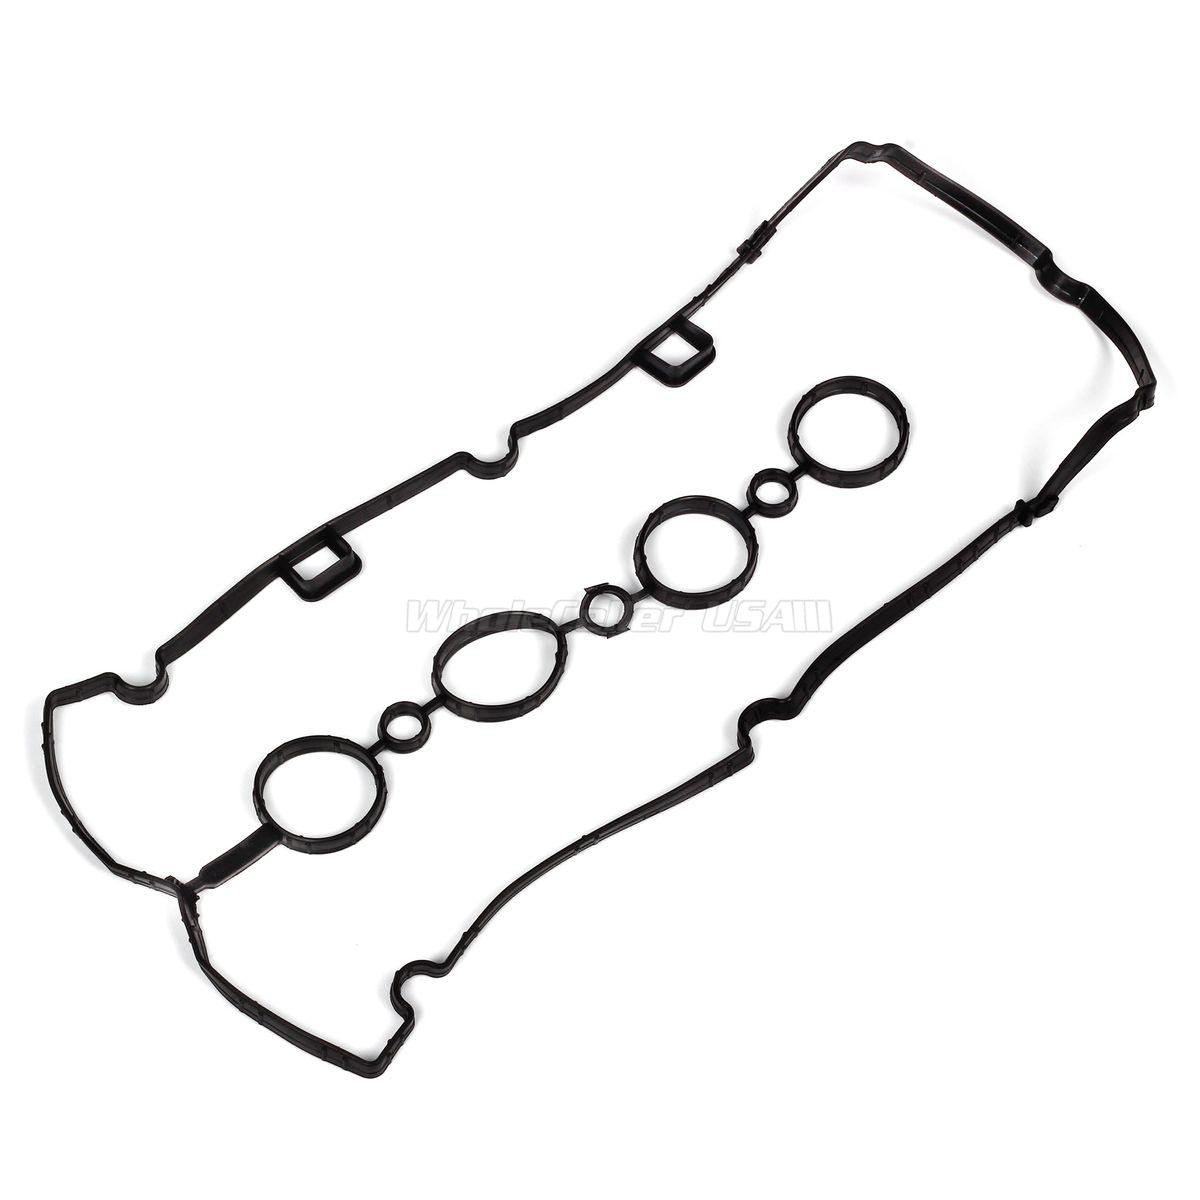 For Chevrolet Cruze Sonic 09-14 Engine Valve Cover Gasket